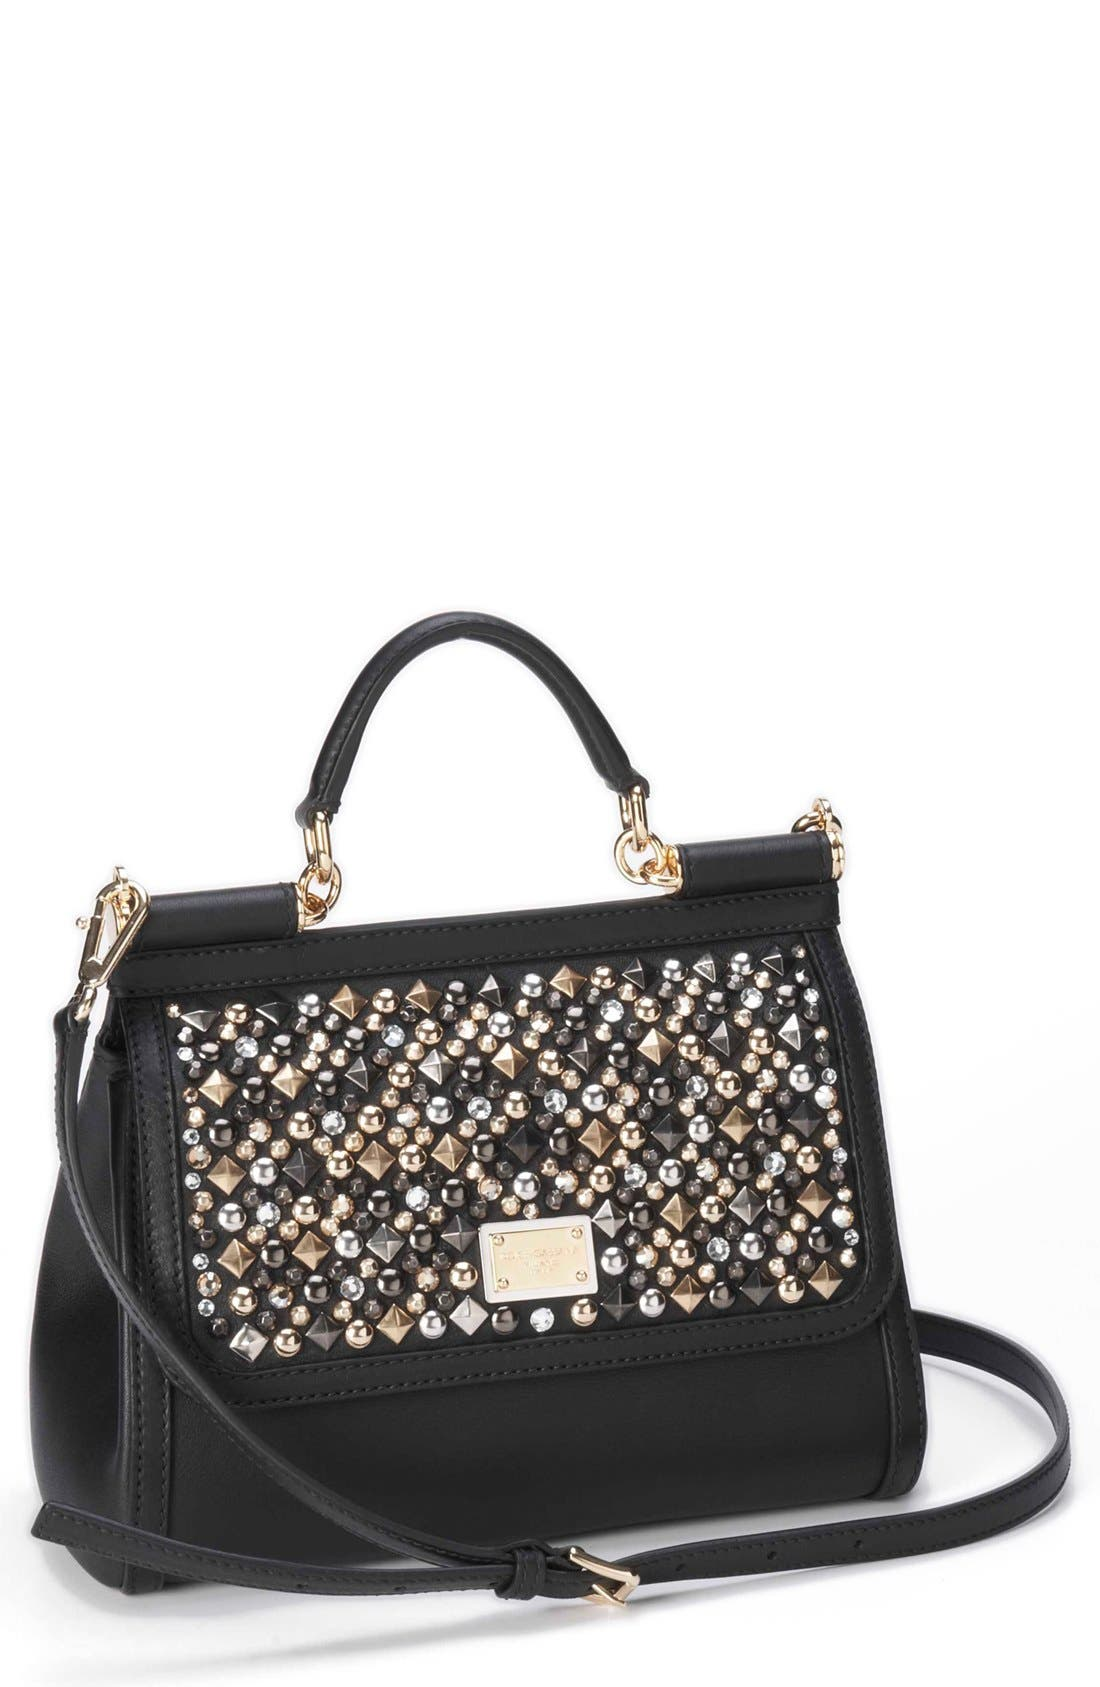 Main Image - Dolce&Gabbana 'Miss Sicily - Mini' Studded Top Handle Leather Satchel